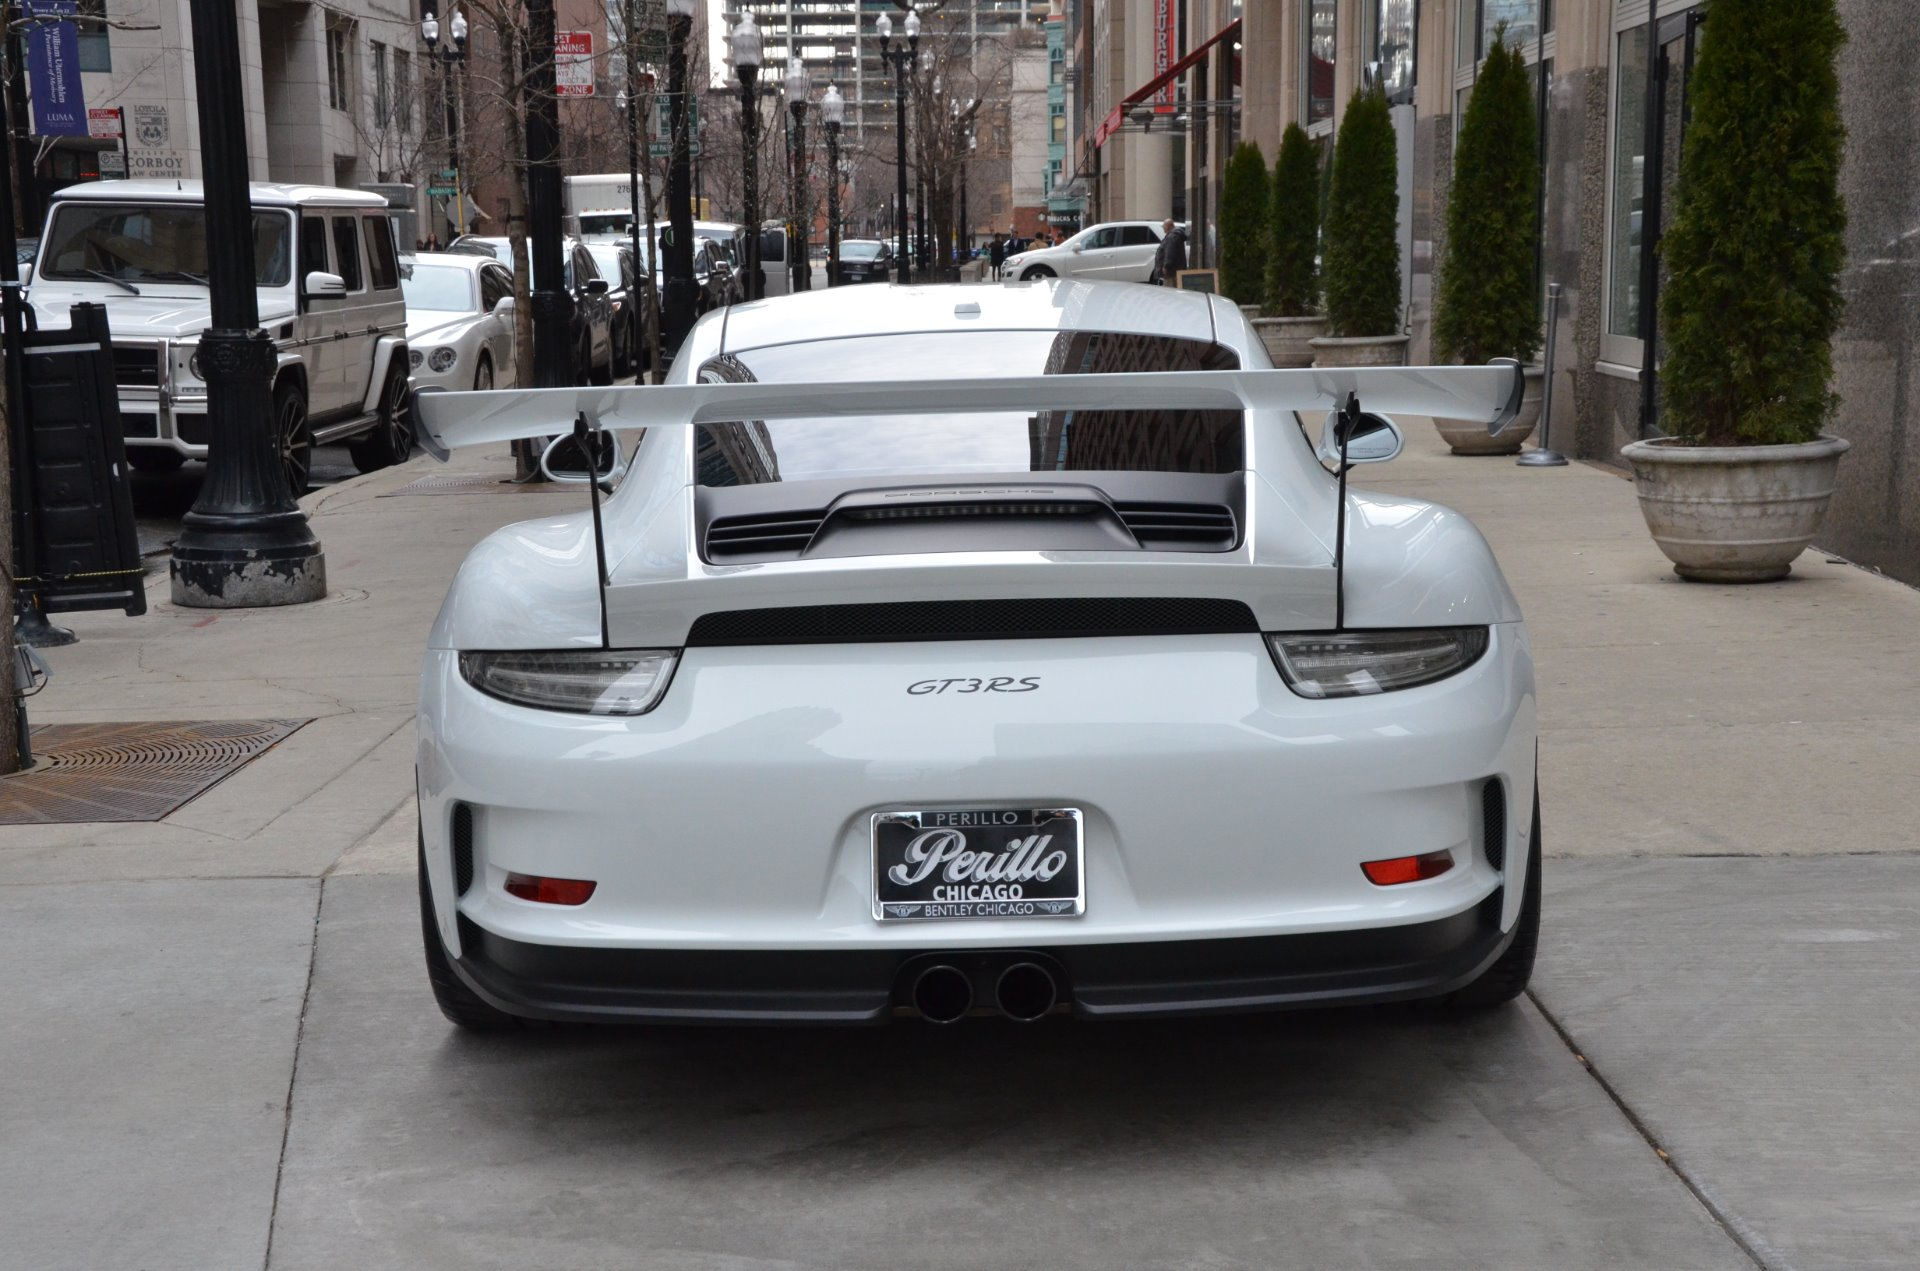 2016 porsche 911 gt3 rs including roll cage stock gc mir129 for sale near chicago il il. Black Bedroom Furniture Sets. Home Design Ideas